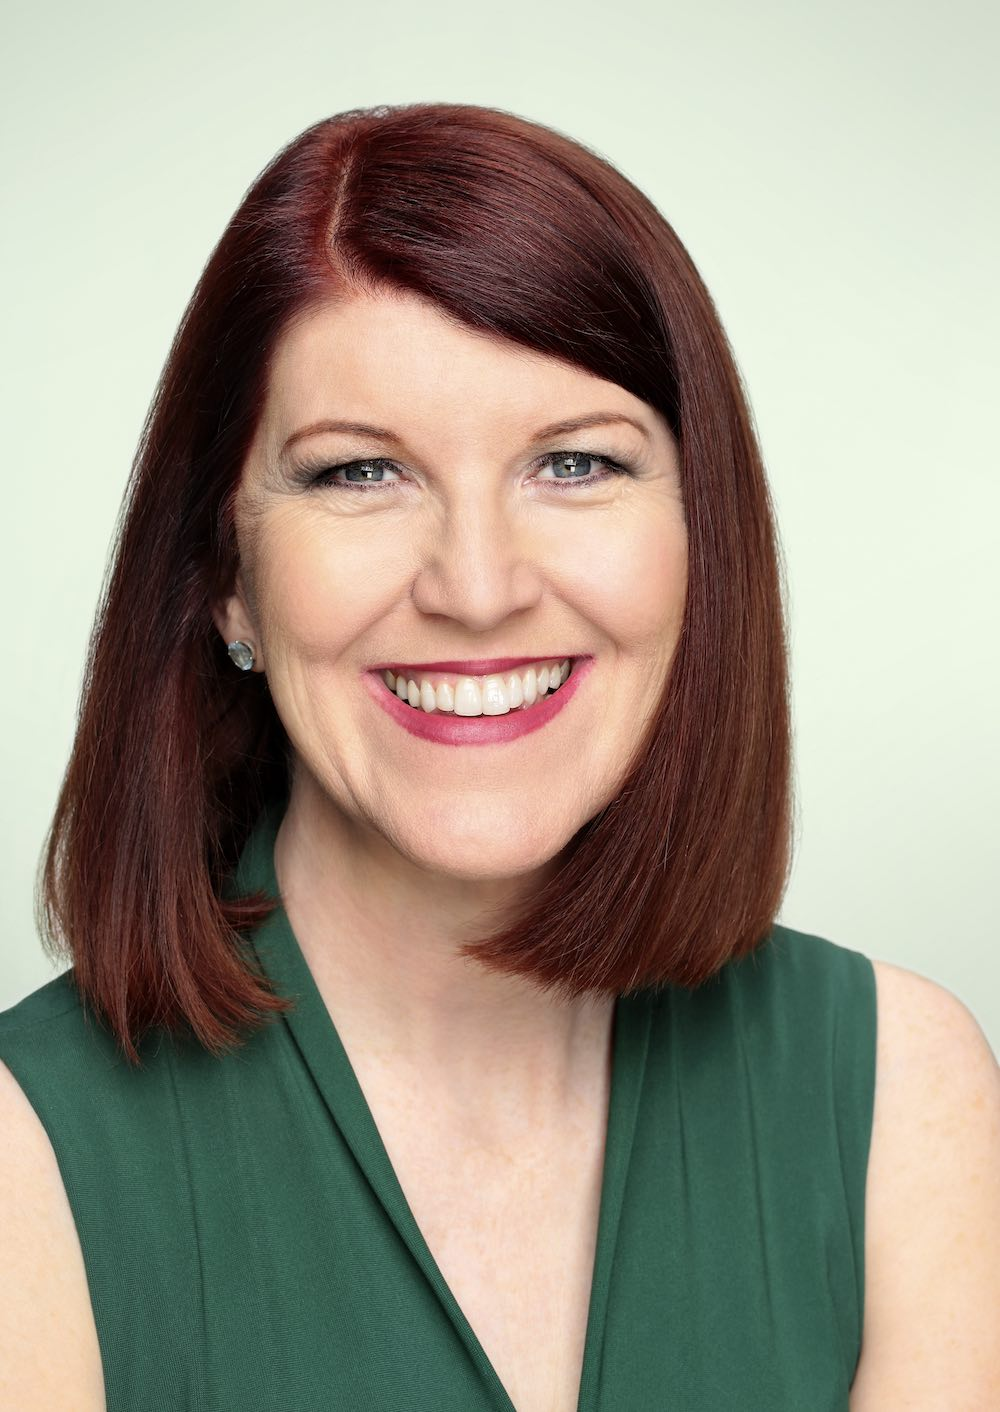 Kate Flannery, Garden Grove Strawberry Festival celebrity 2017